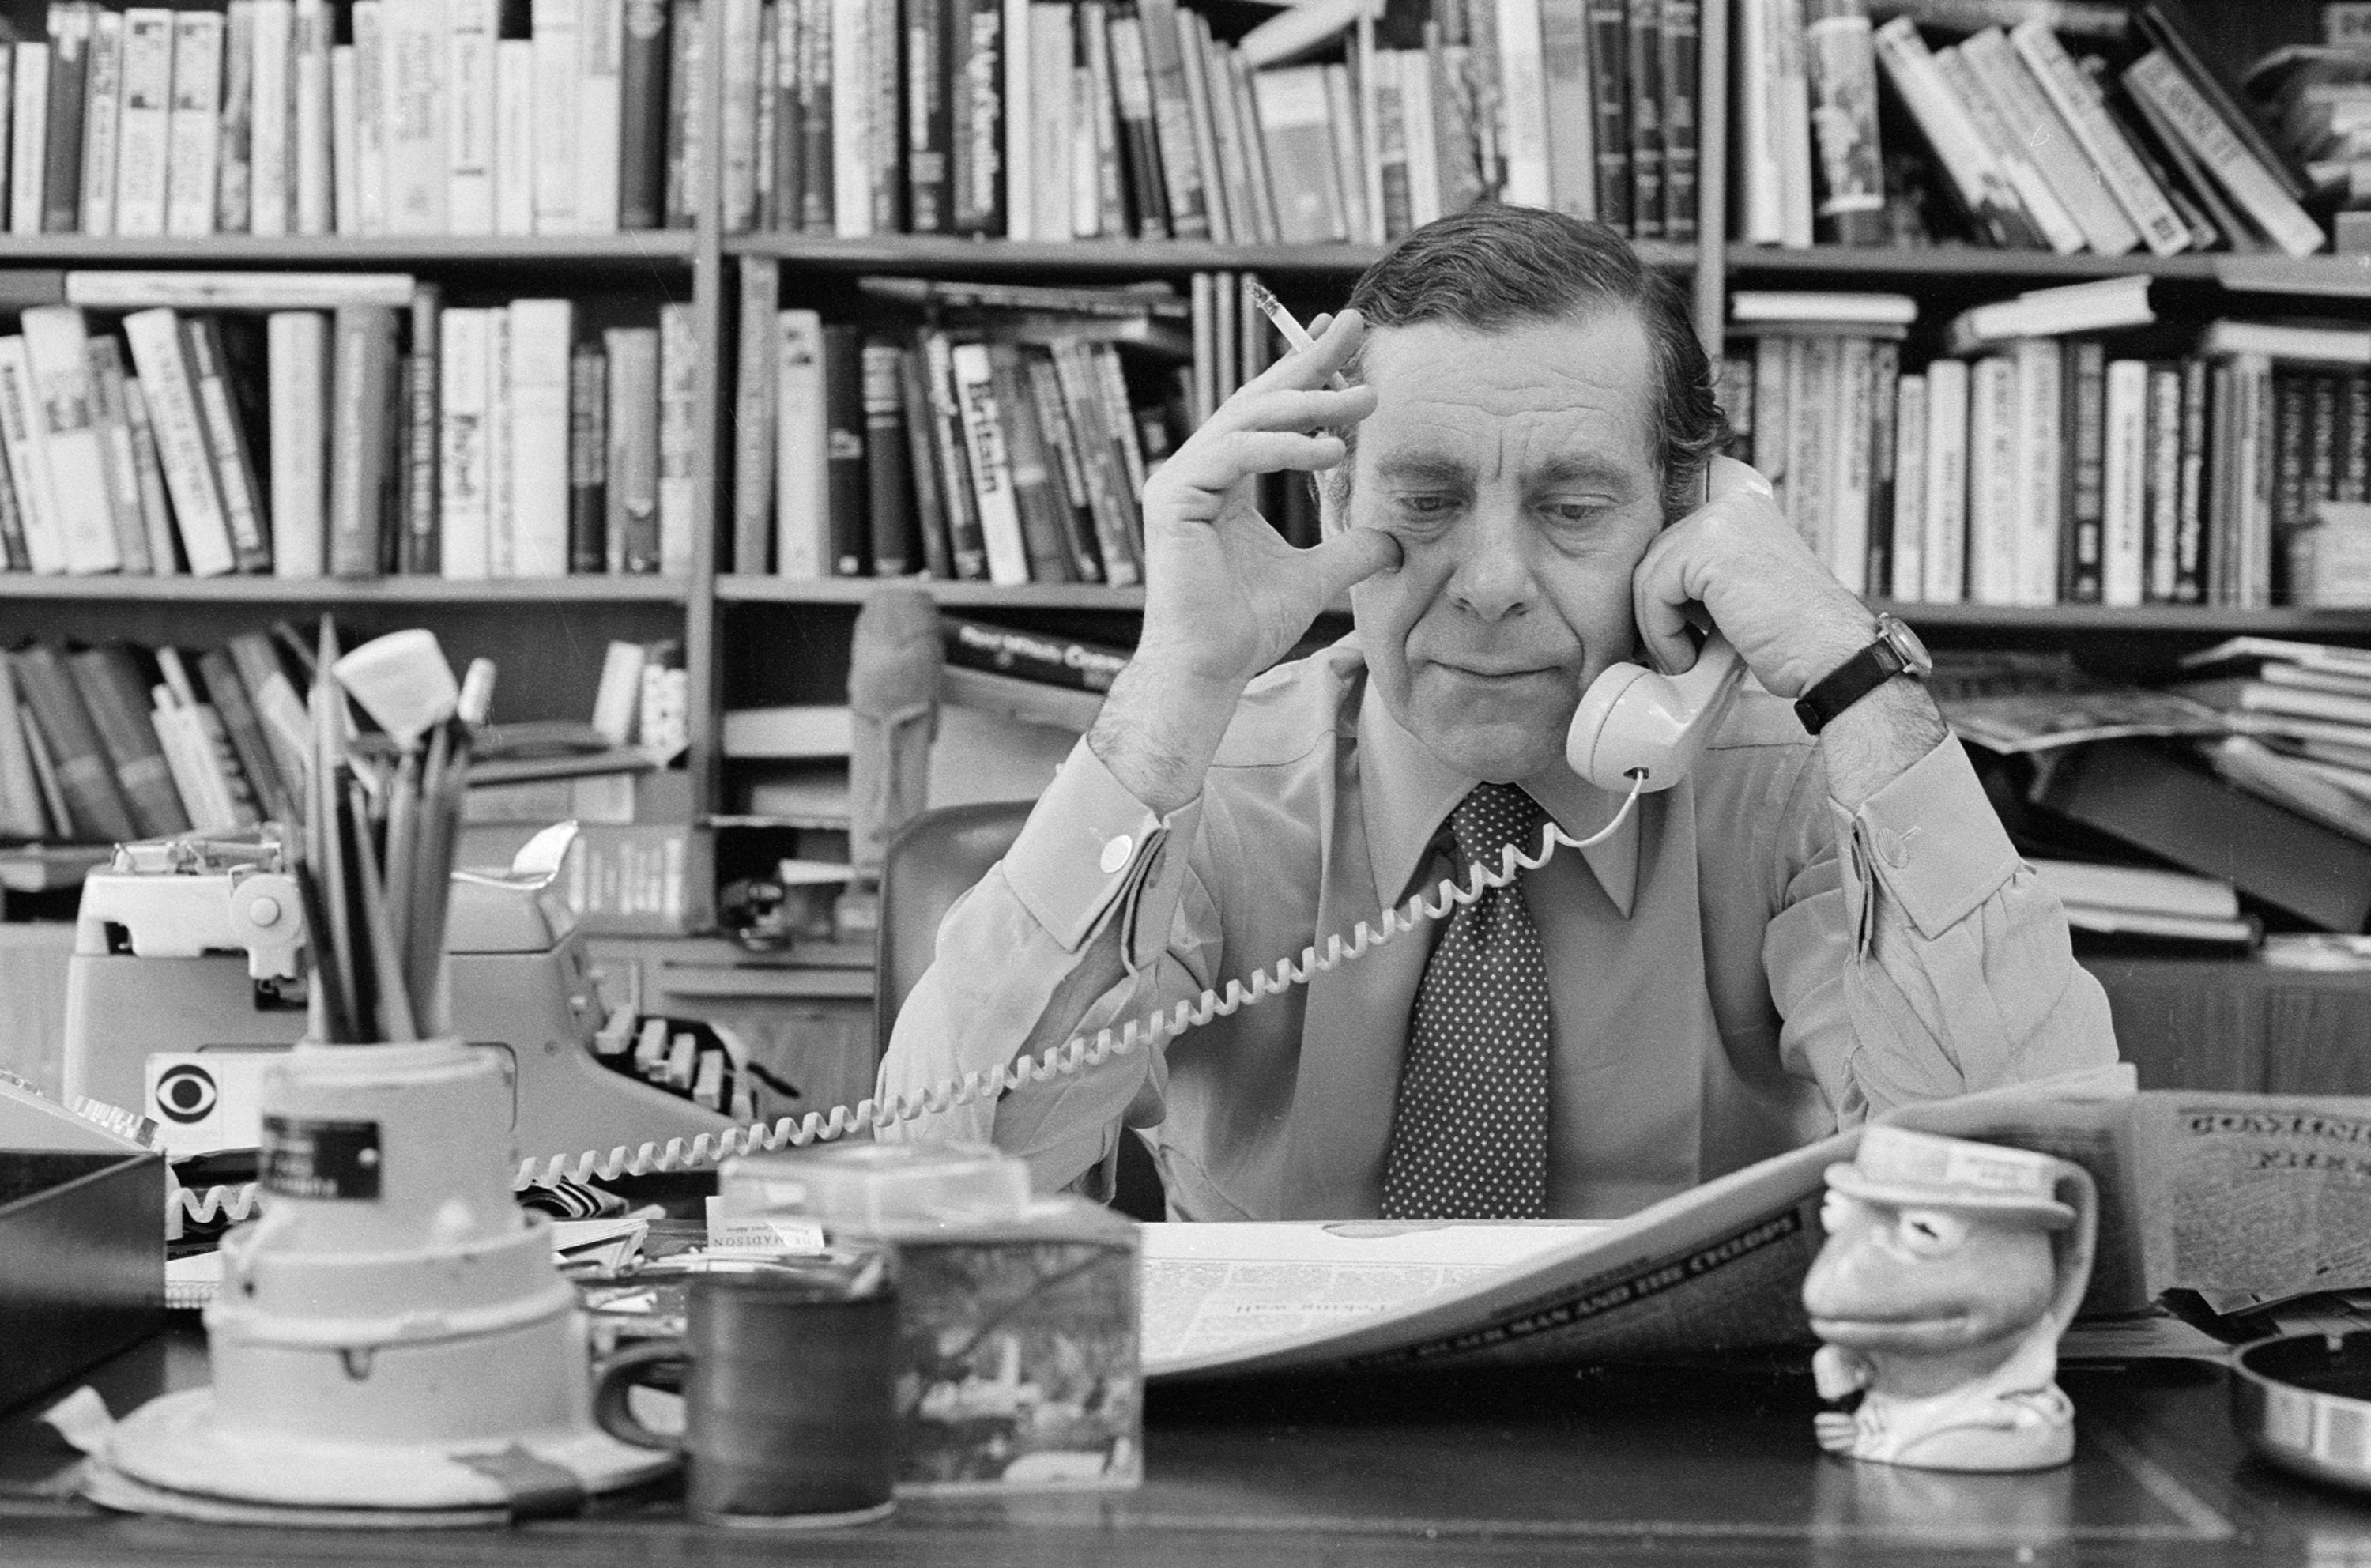 Morley Safer in his office on April 21, 1980